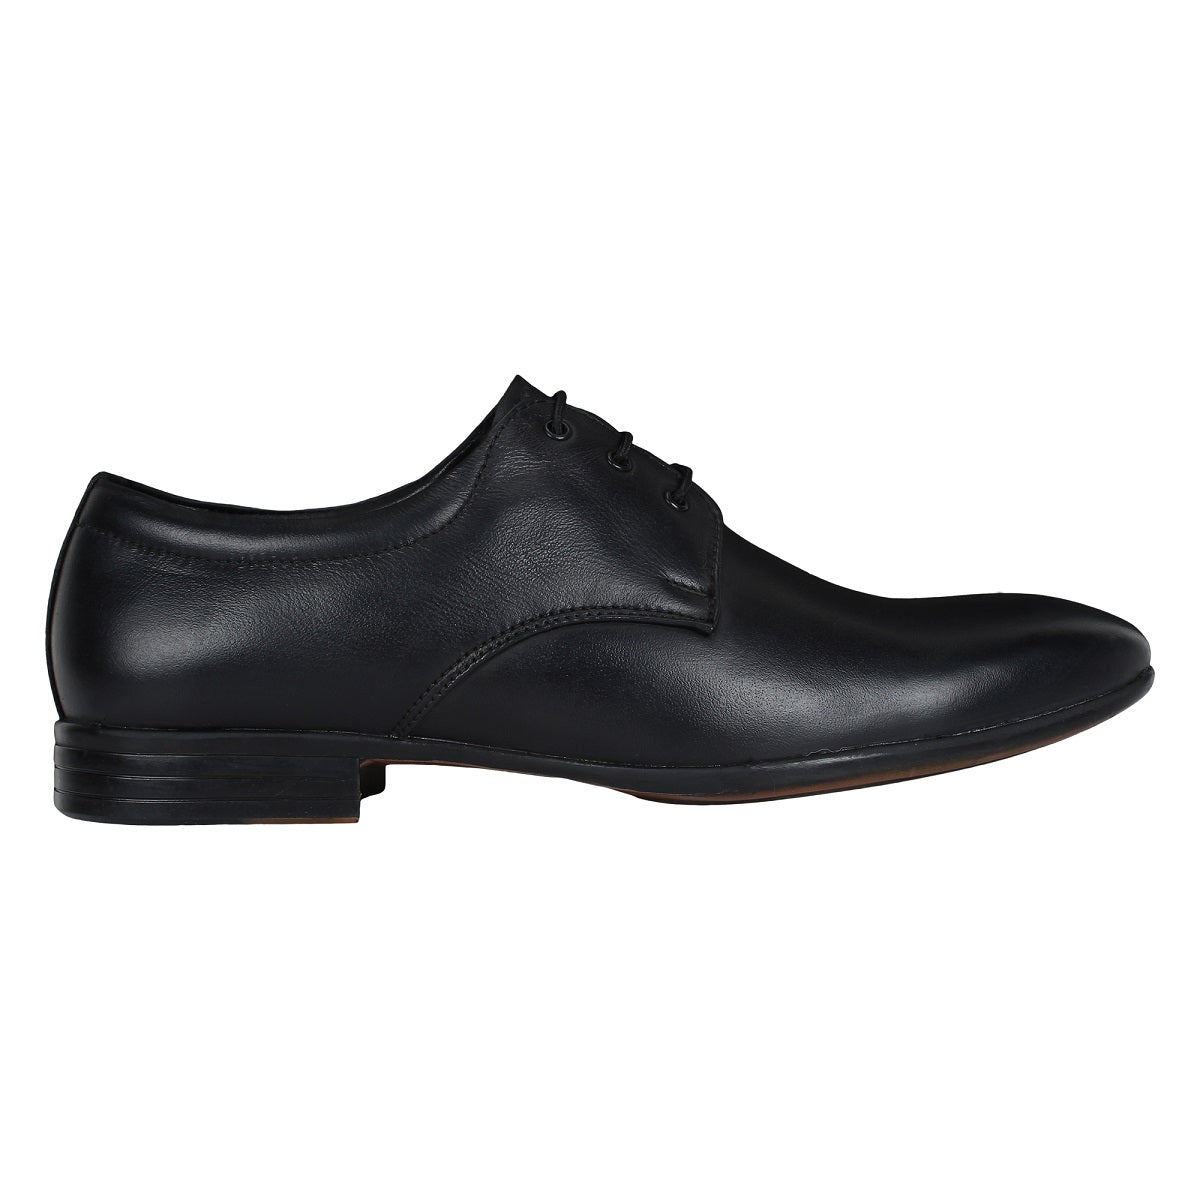 Square Toe Formal Shoes for Men - Minor Defect